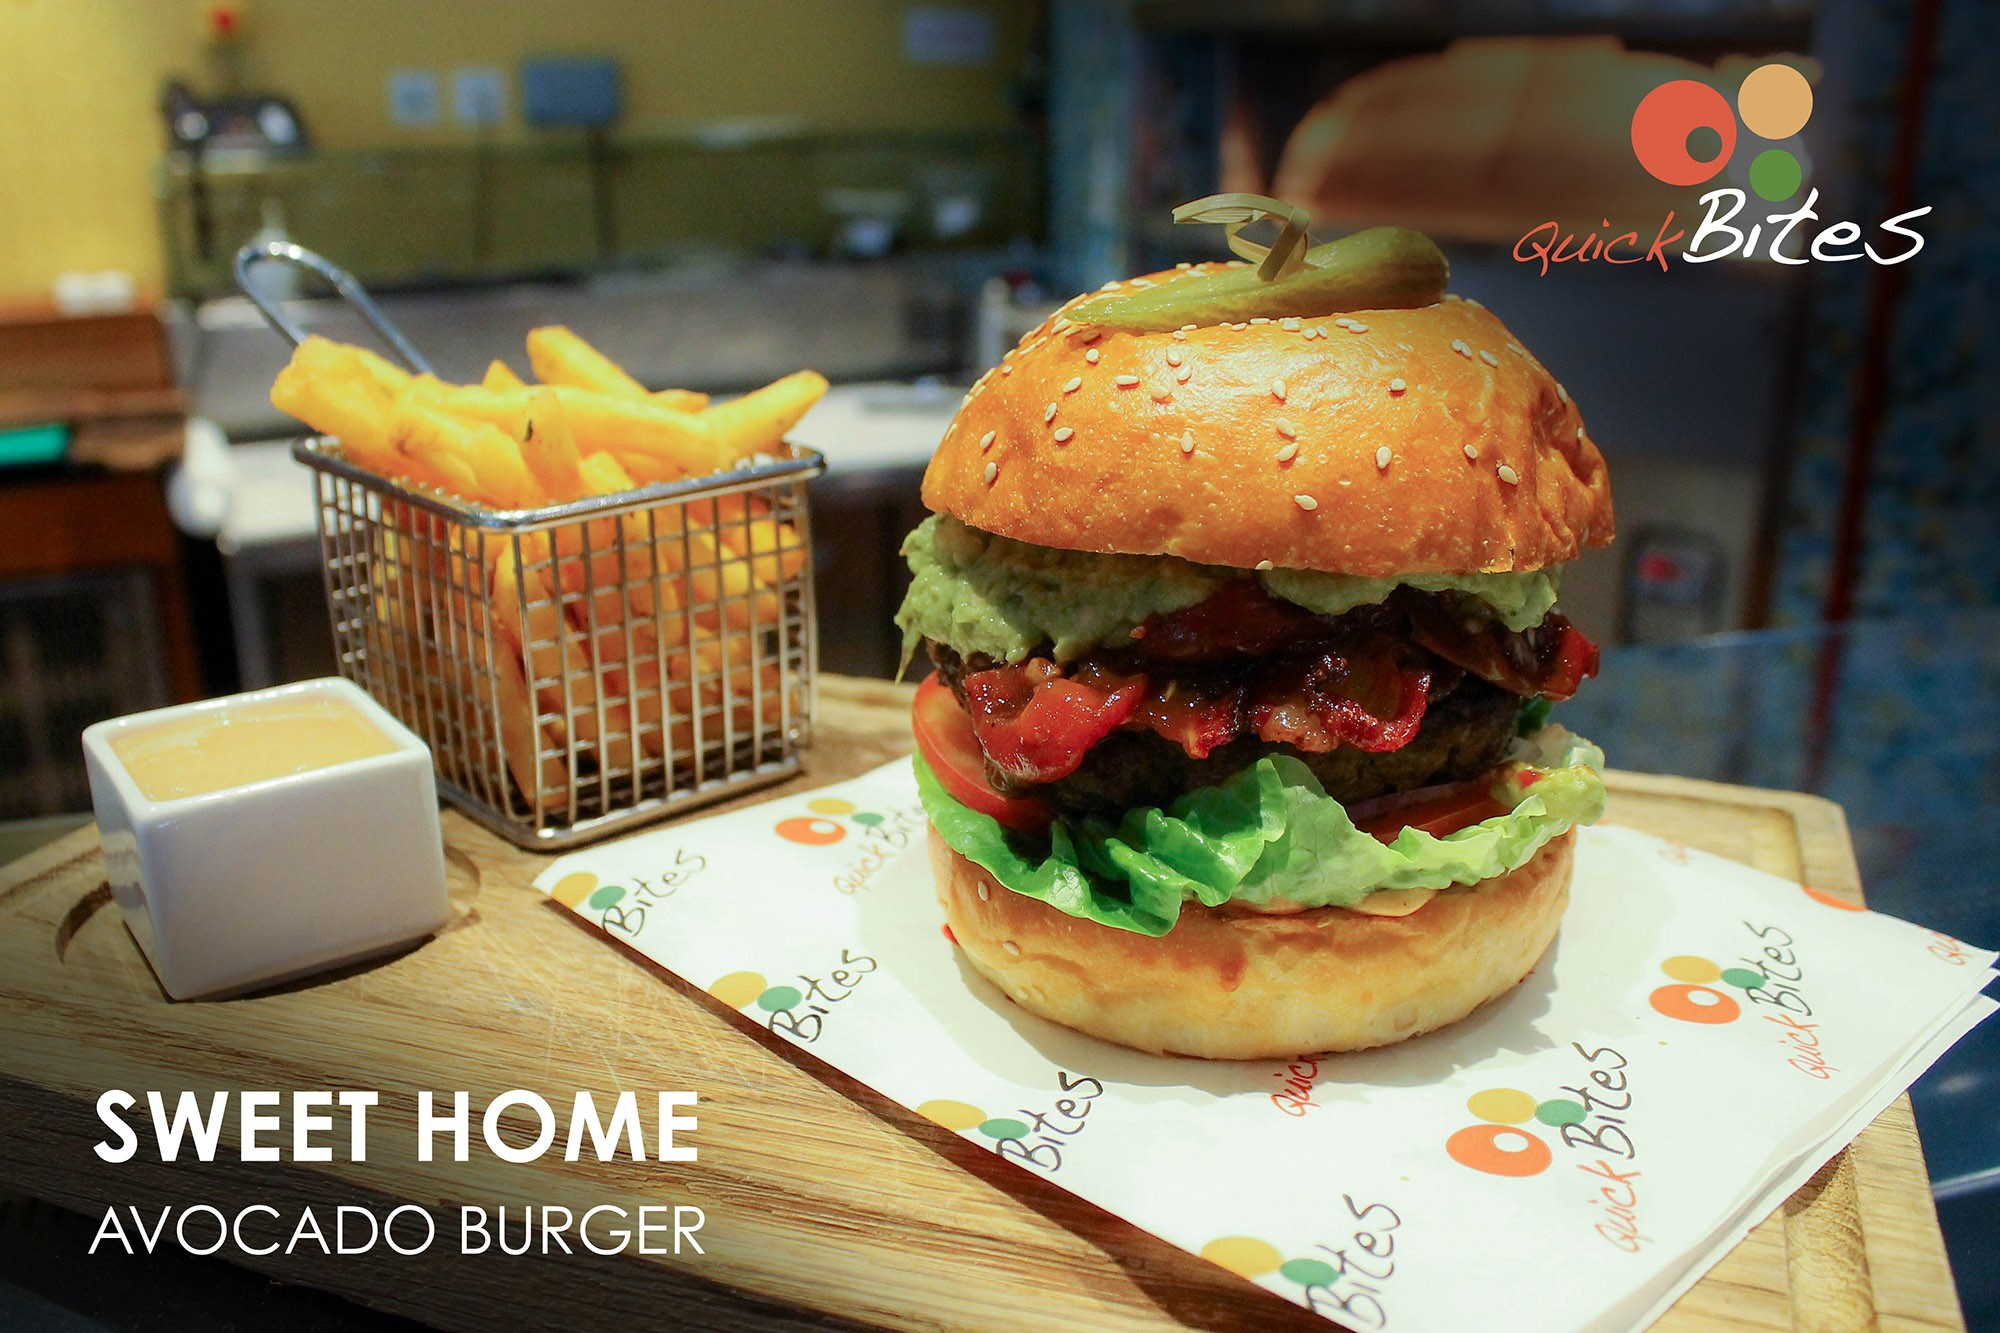 AllandAbout Chef's Special: Sweet Avocado Burger